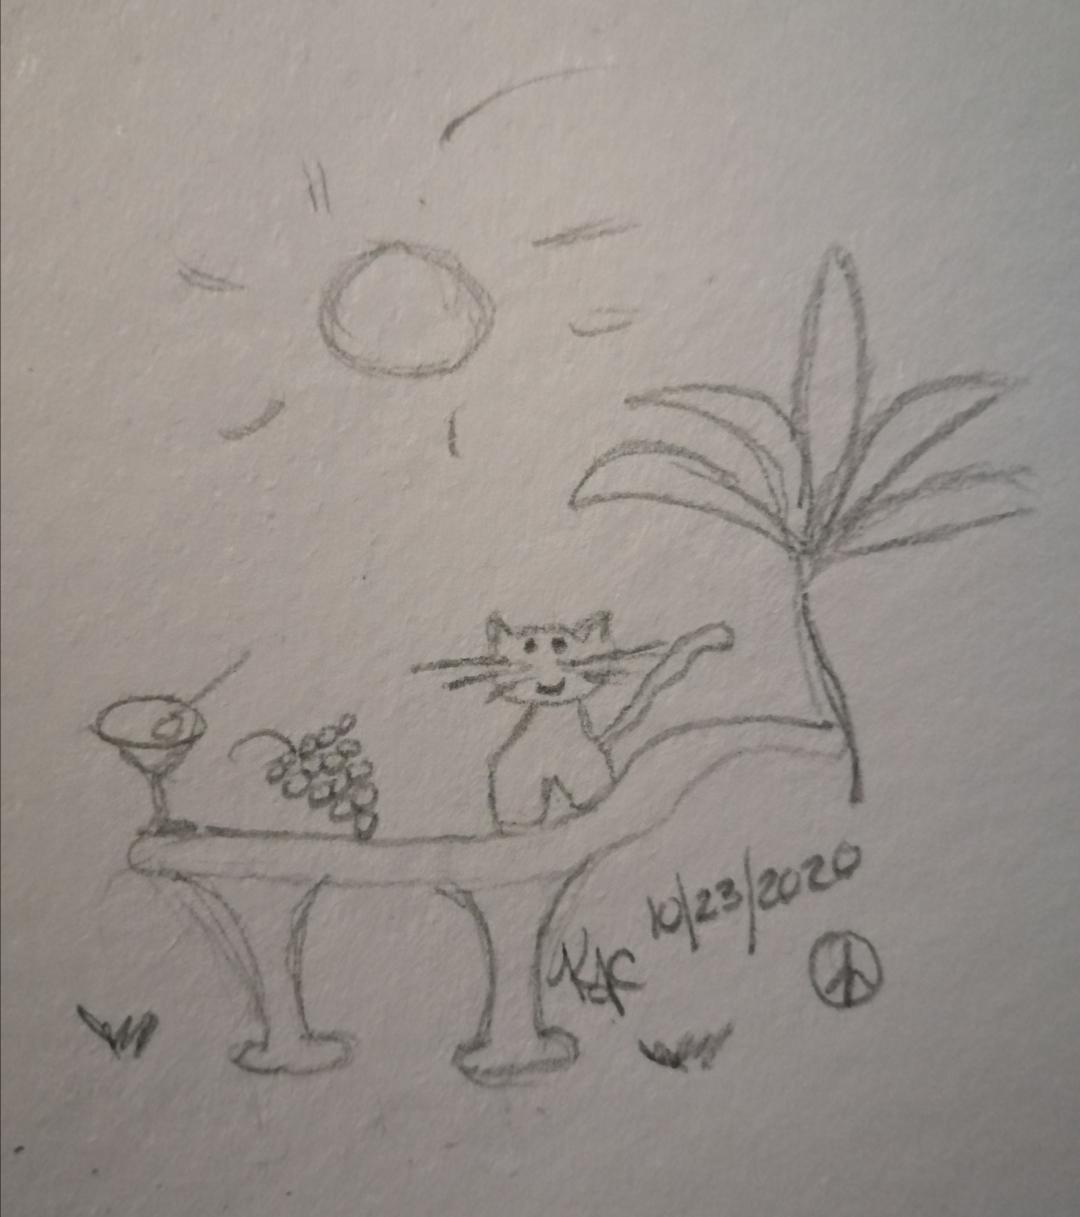 My Cat Loves To Eat Grapes ~ by Katrina Curtiss 10/23/2020